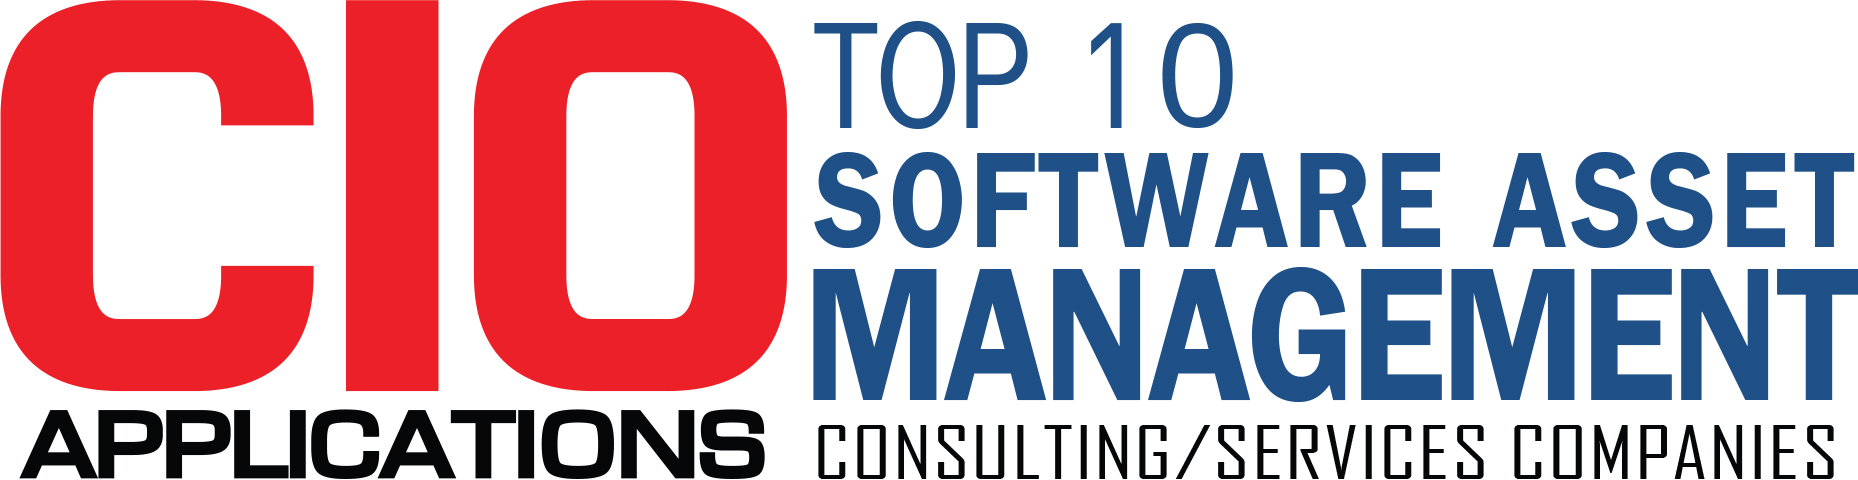 top software asset management solution companies